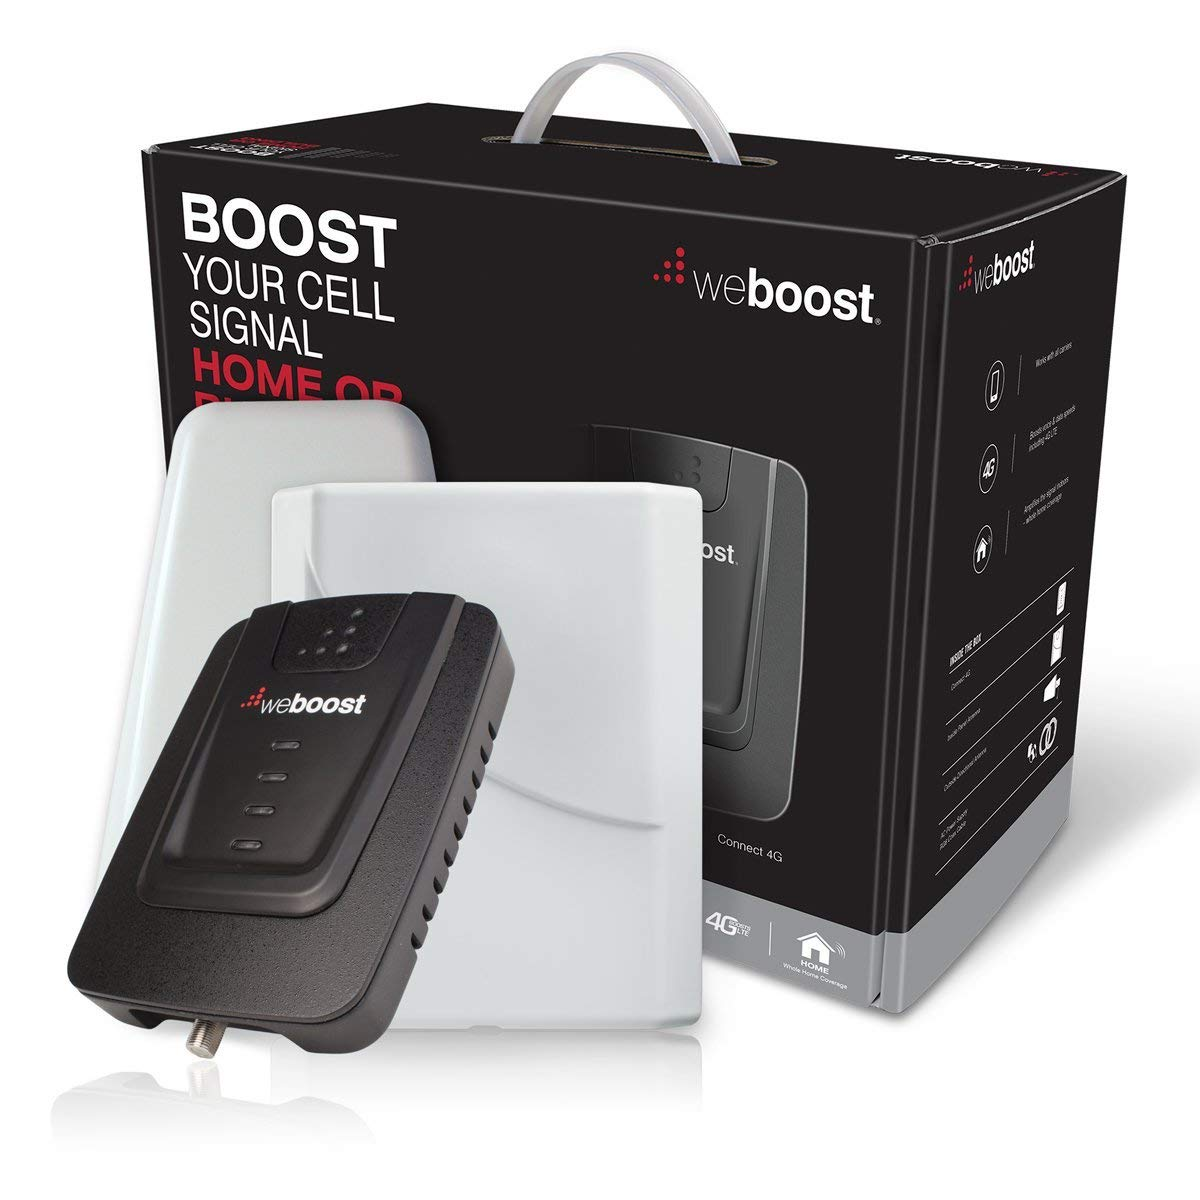 weBoost Connect 4G 470103R Indoor Cell Phone Signal Booster for Home and Office - Supports 5,000 Square Foot Area (Renewed) by weBoost